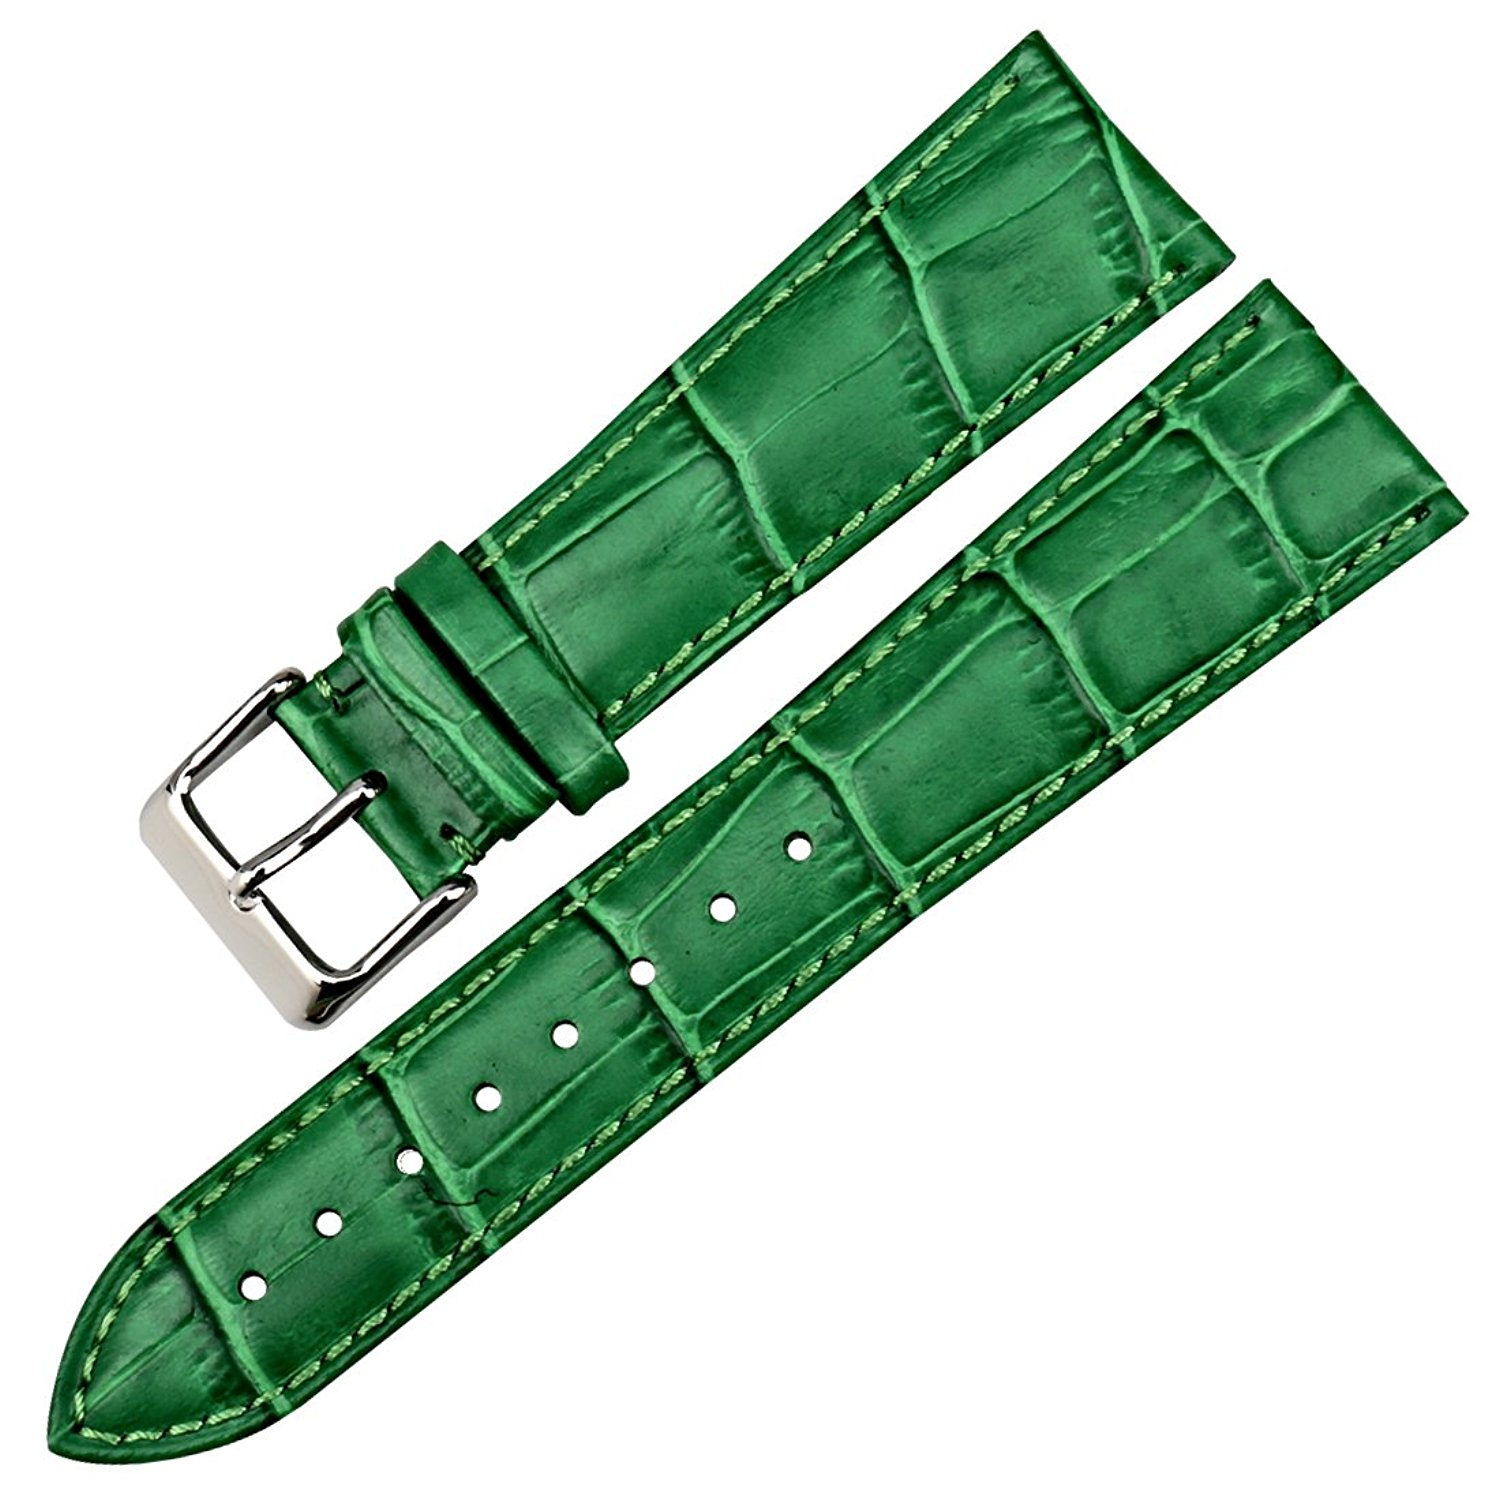 d9813872e8f Get Quotations · MAIKES Watch Band Genuine Leather Green for Gucci Women  Watchbands 16 18 20 22mm